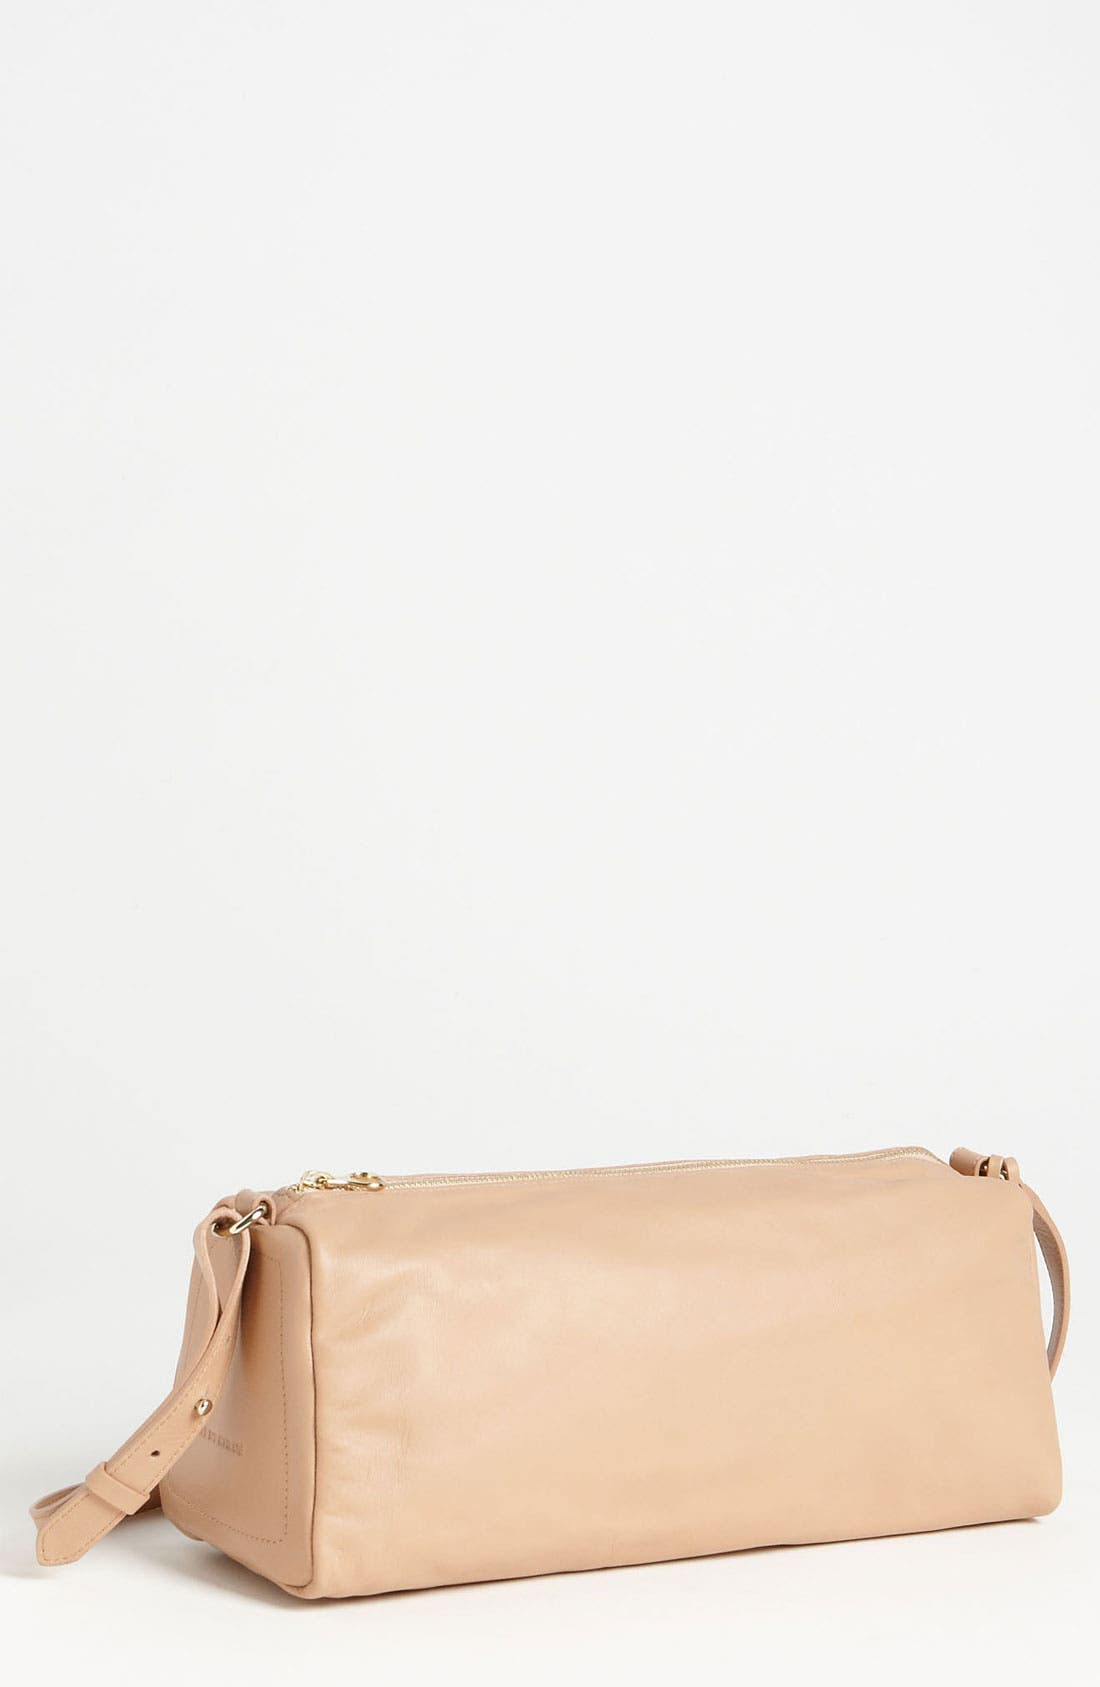 Main Image - See by Chloé 'Albane' Crossbody Bag